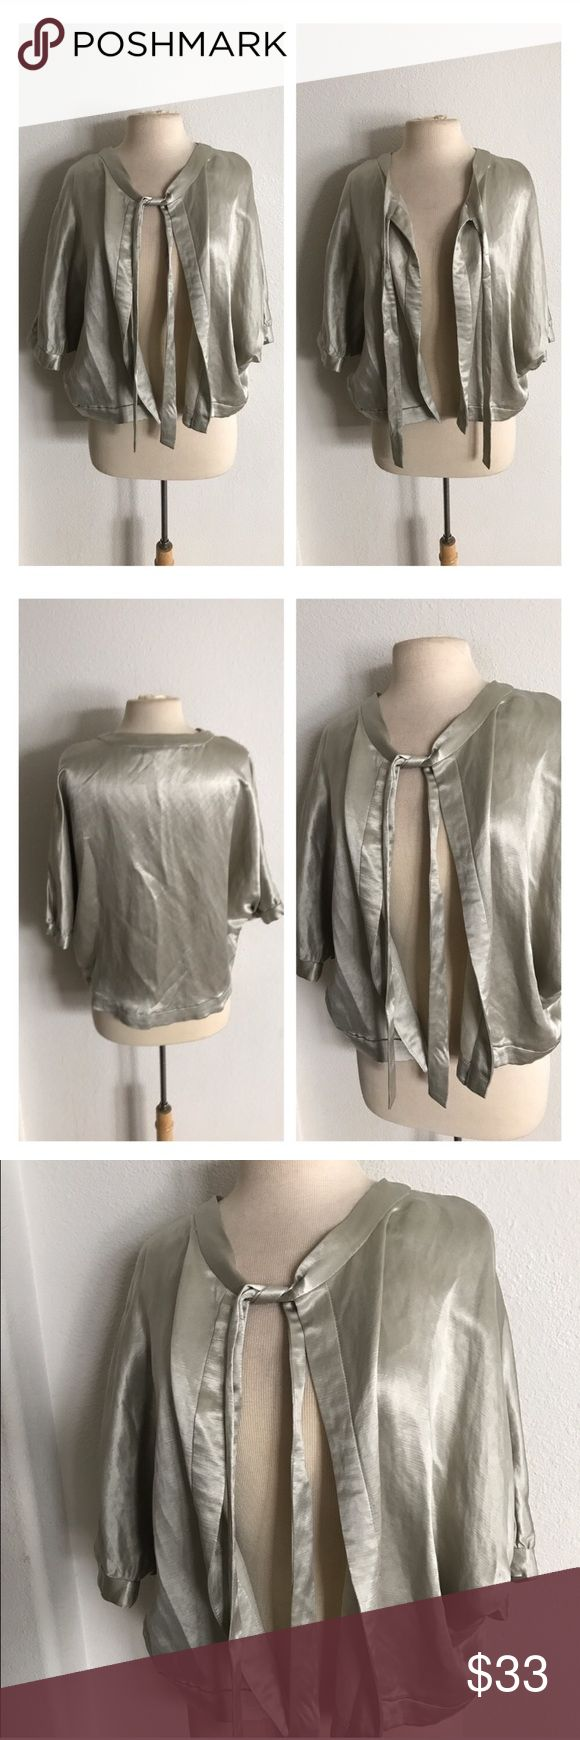 """Elevenses """"Florena"""" shimmer jacket Elevenses """"Florena"""" shimmer jacket. Size S. Measures 24"""". 55% linen/ 45%  cupro. Dolman sleeves. Tie top closure (no other closure). Very silky feeling! Color is more on the silver side with a light hint of gold. Very great used condition.  🚫NO TRADES 💲Reasonable offers accepted 💰Ask about bundle discounts Anthropologie Jackets & Coats"""